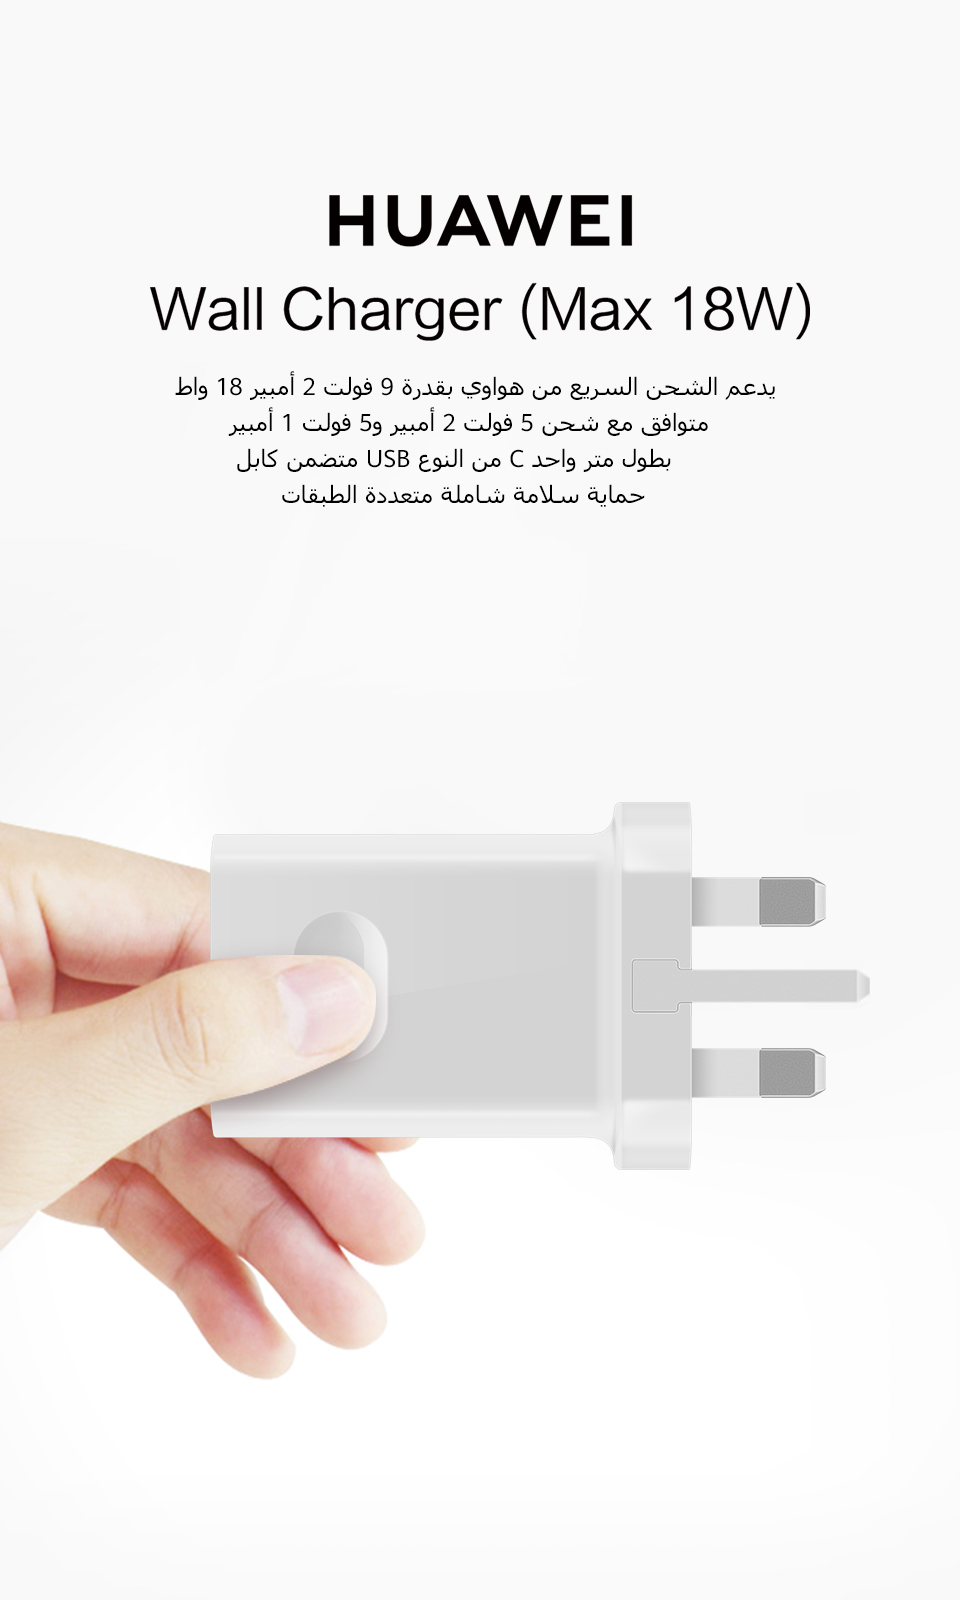 HUAWEI Quick Charge Wall Charger (Max 18W)